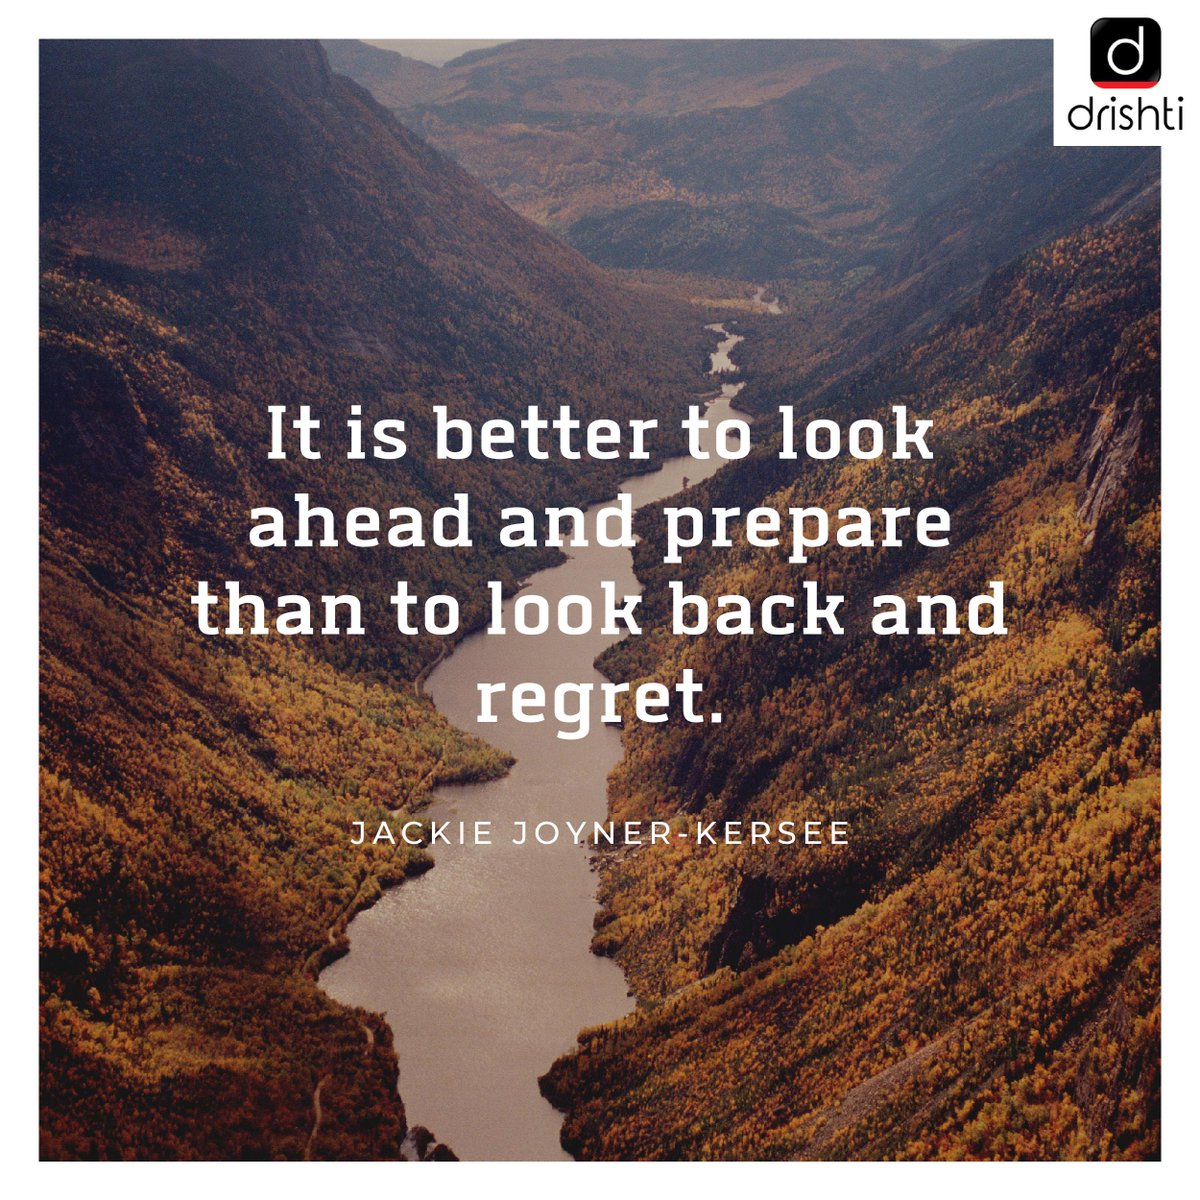 Drishti Ias English On Twitter This Will Help You Stay Motivated Throughout The Week Mondaymotivation Mondaythought Motivationfortheweek Motivation Motivationalquotes Motivational Quotes Https T Co 220iobwszs